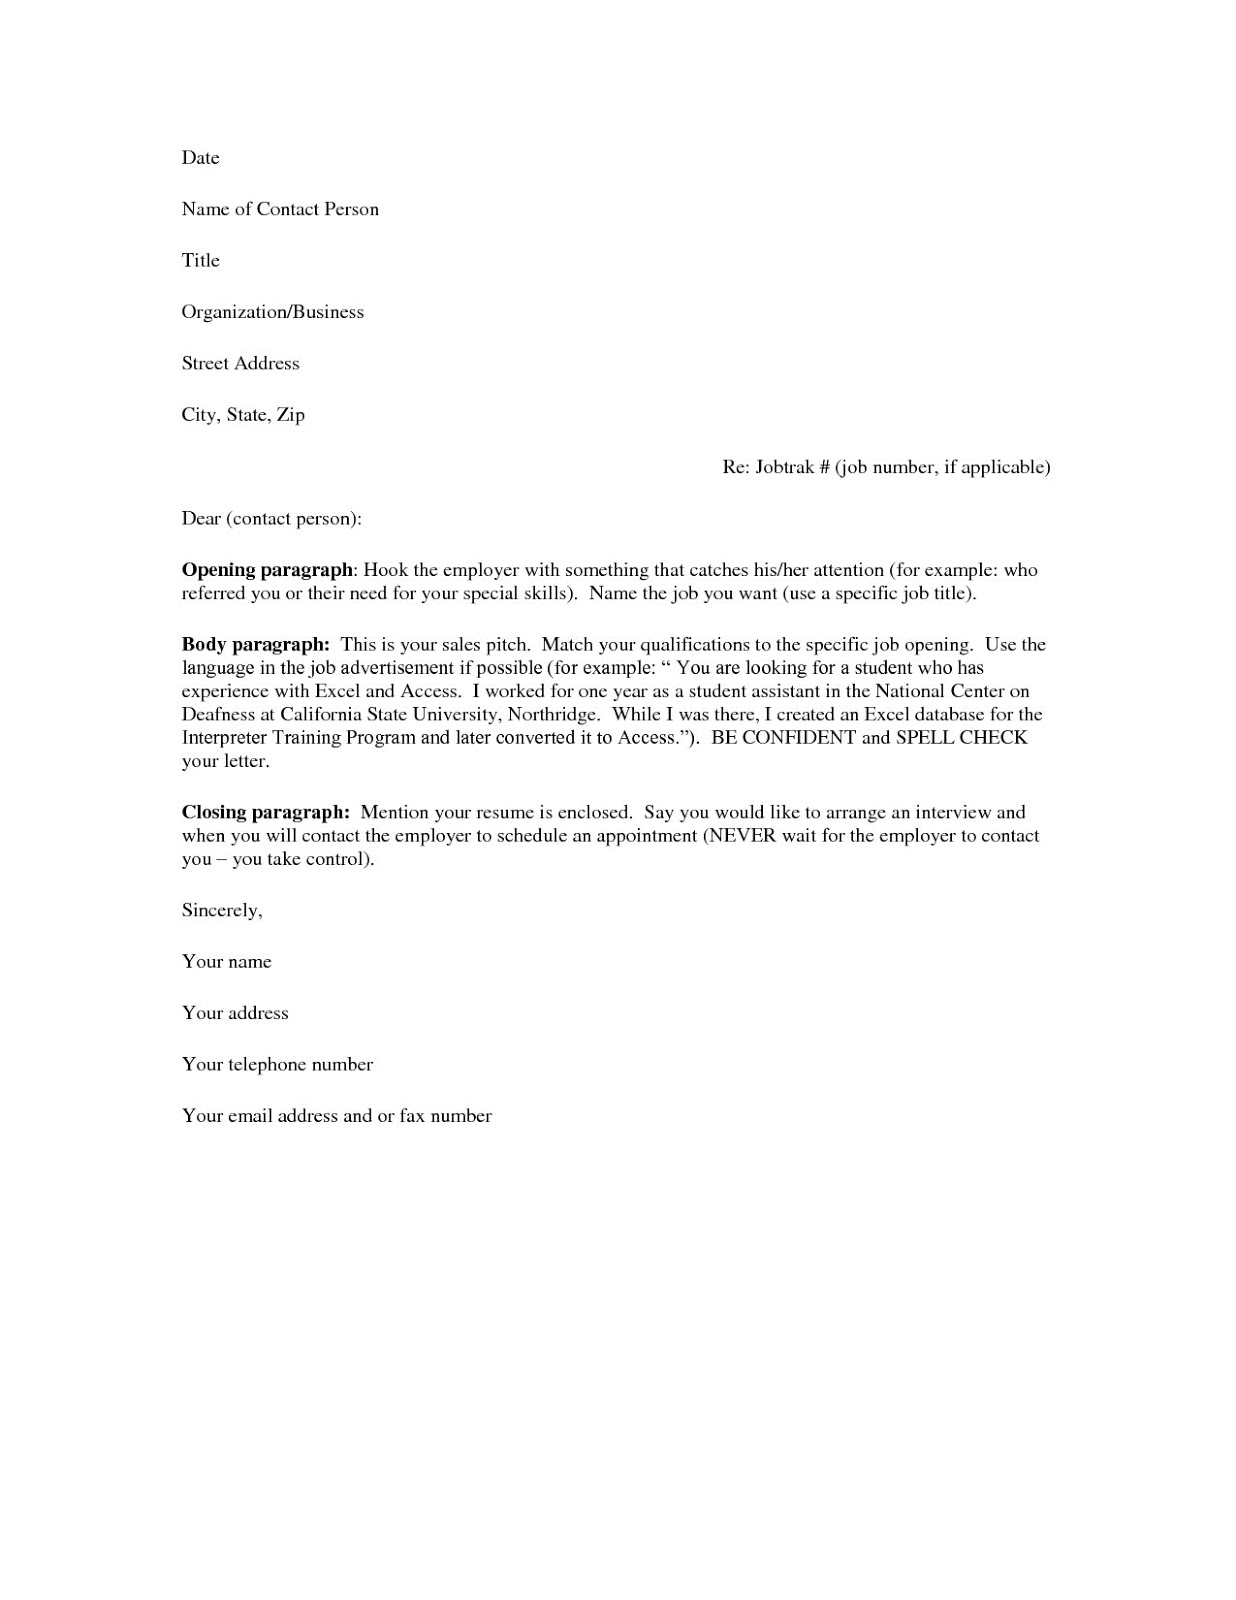 resume cover letter out contact resume builder resume cover letter out contact how to your resume - Format For Resume Cover Letter